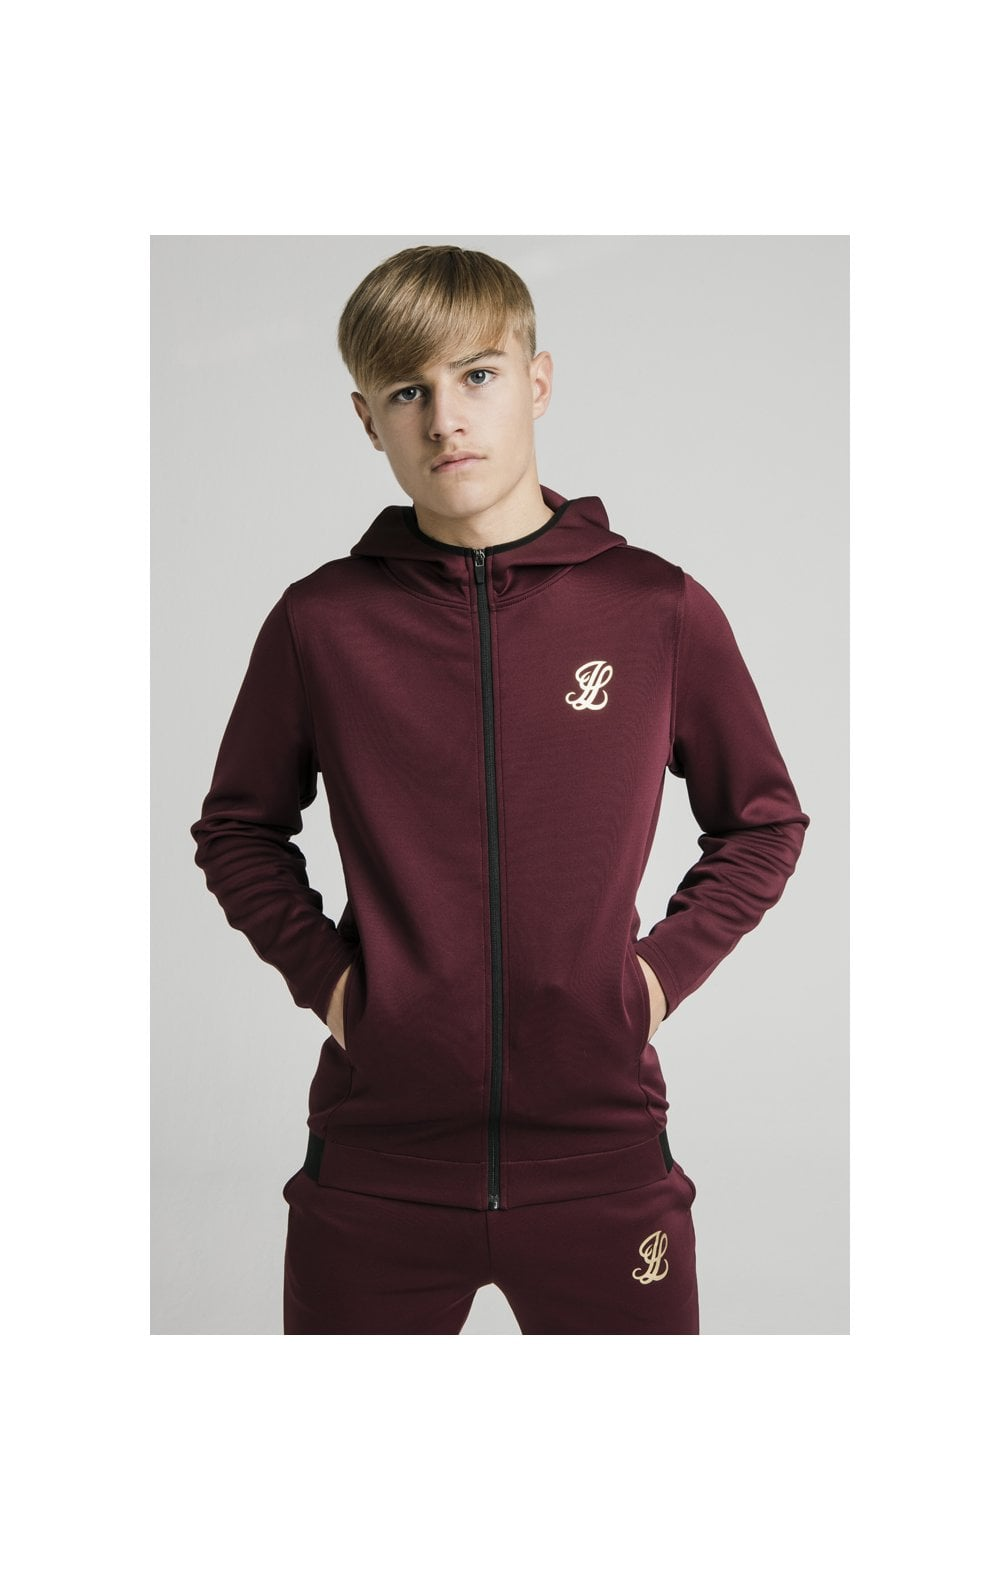 Load image into Gallery viewer, Illusive London Agility Zip Through Hoodie - Burgundy